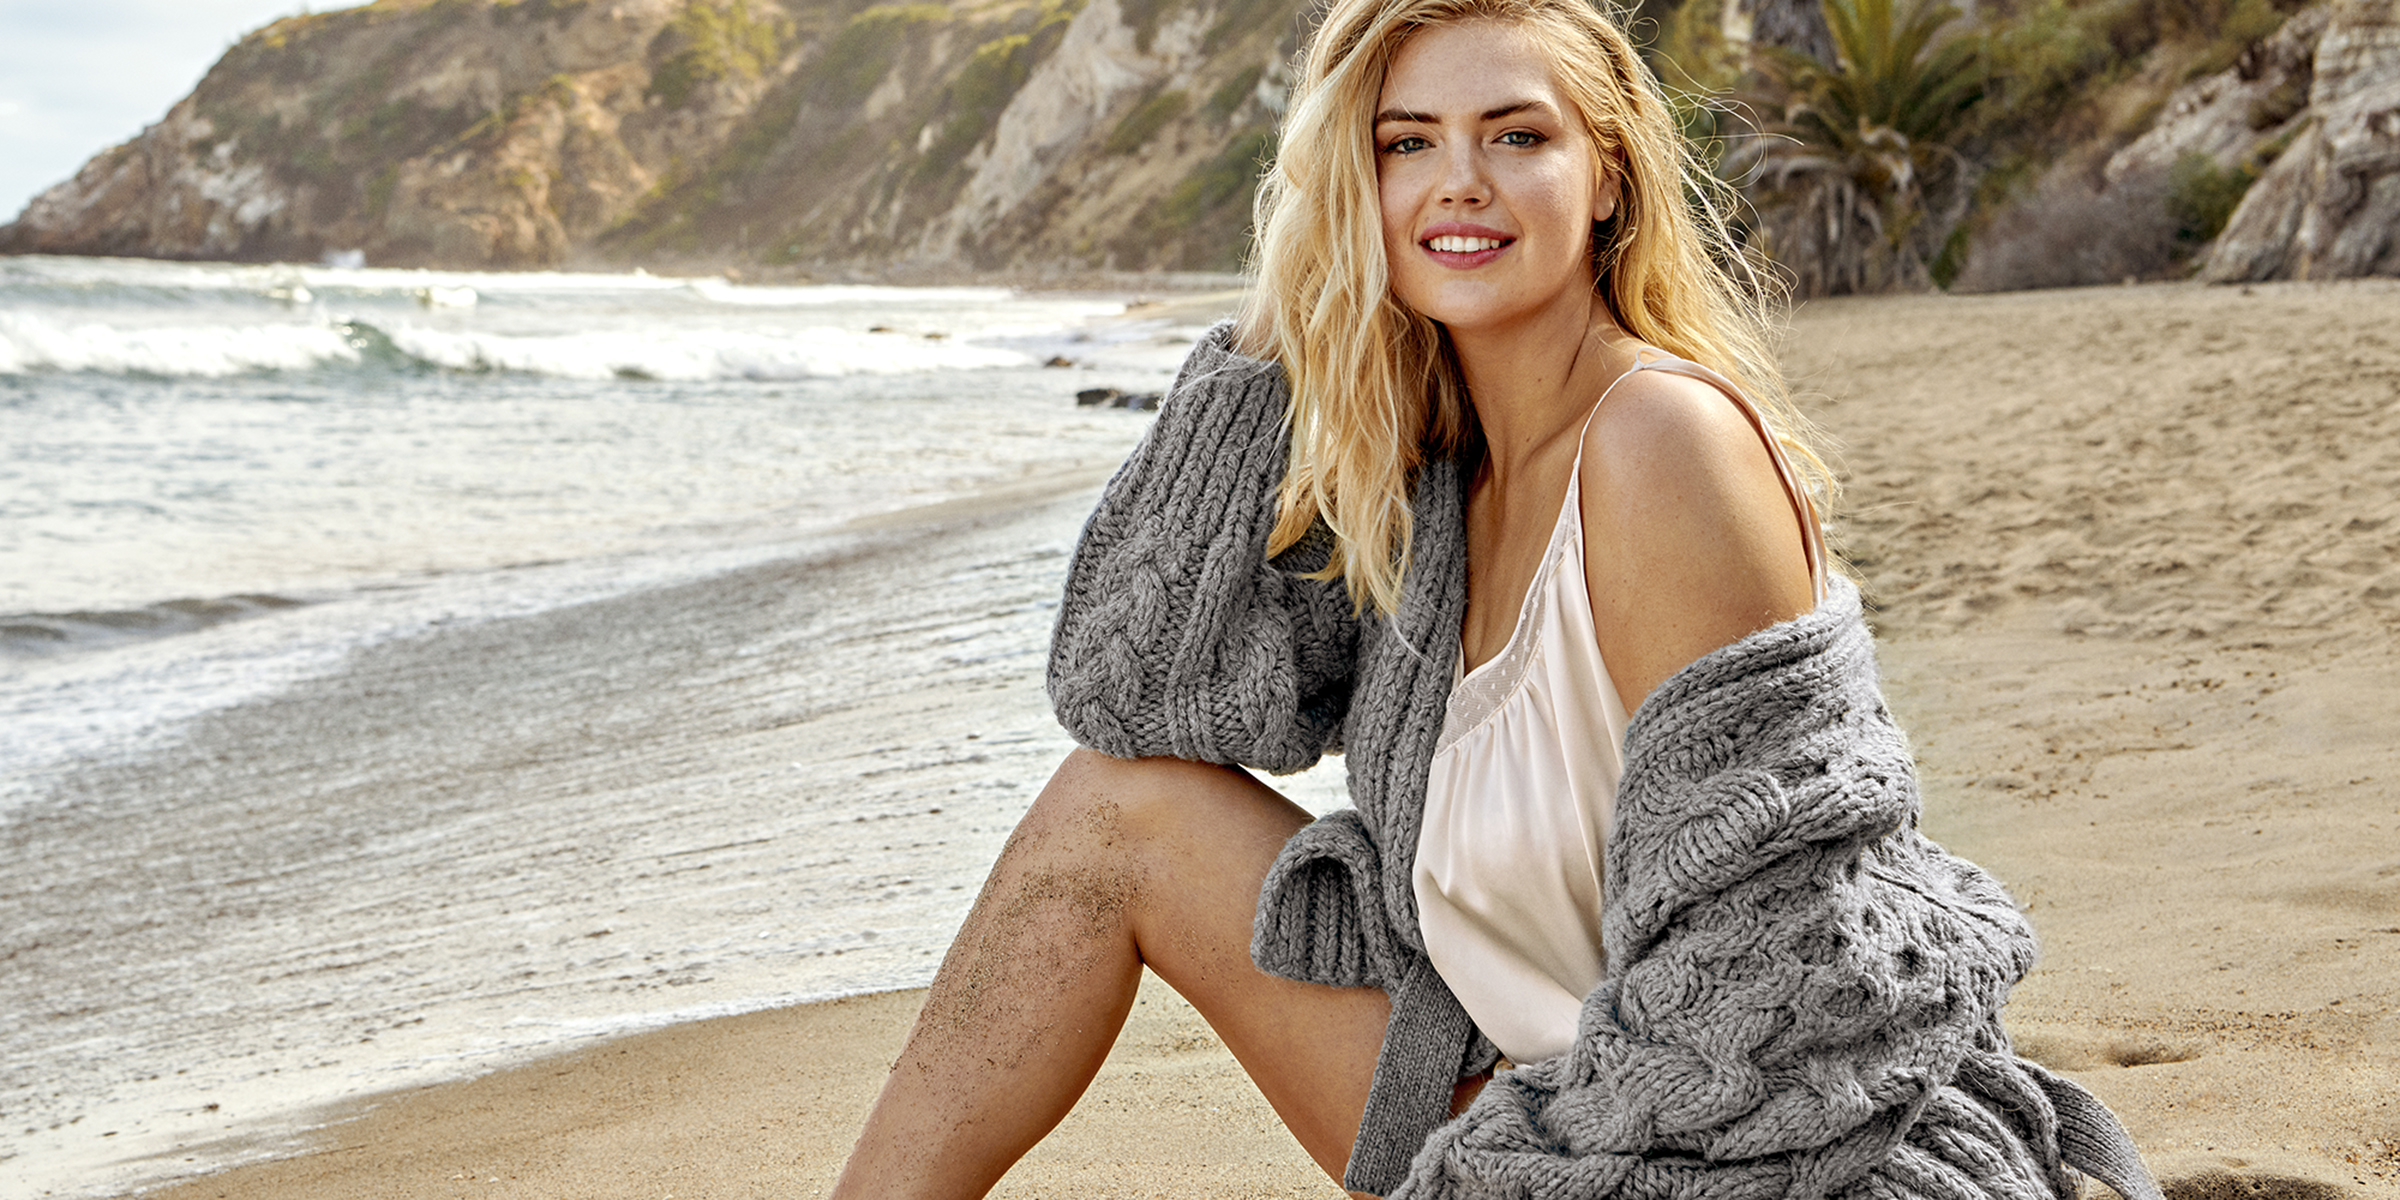 Kate Upton Says Her Unretouched Health Magazine Cover Is A Step Forward